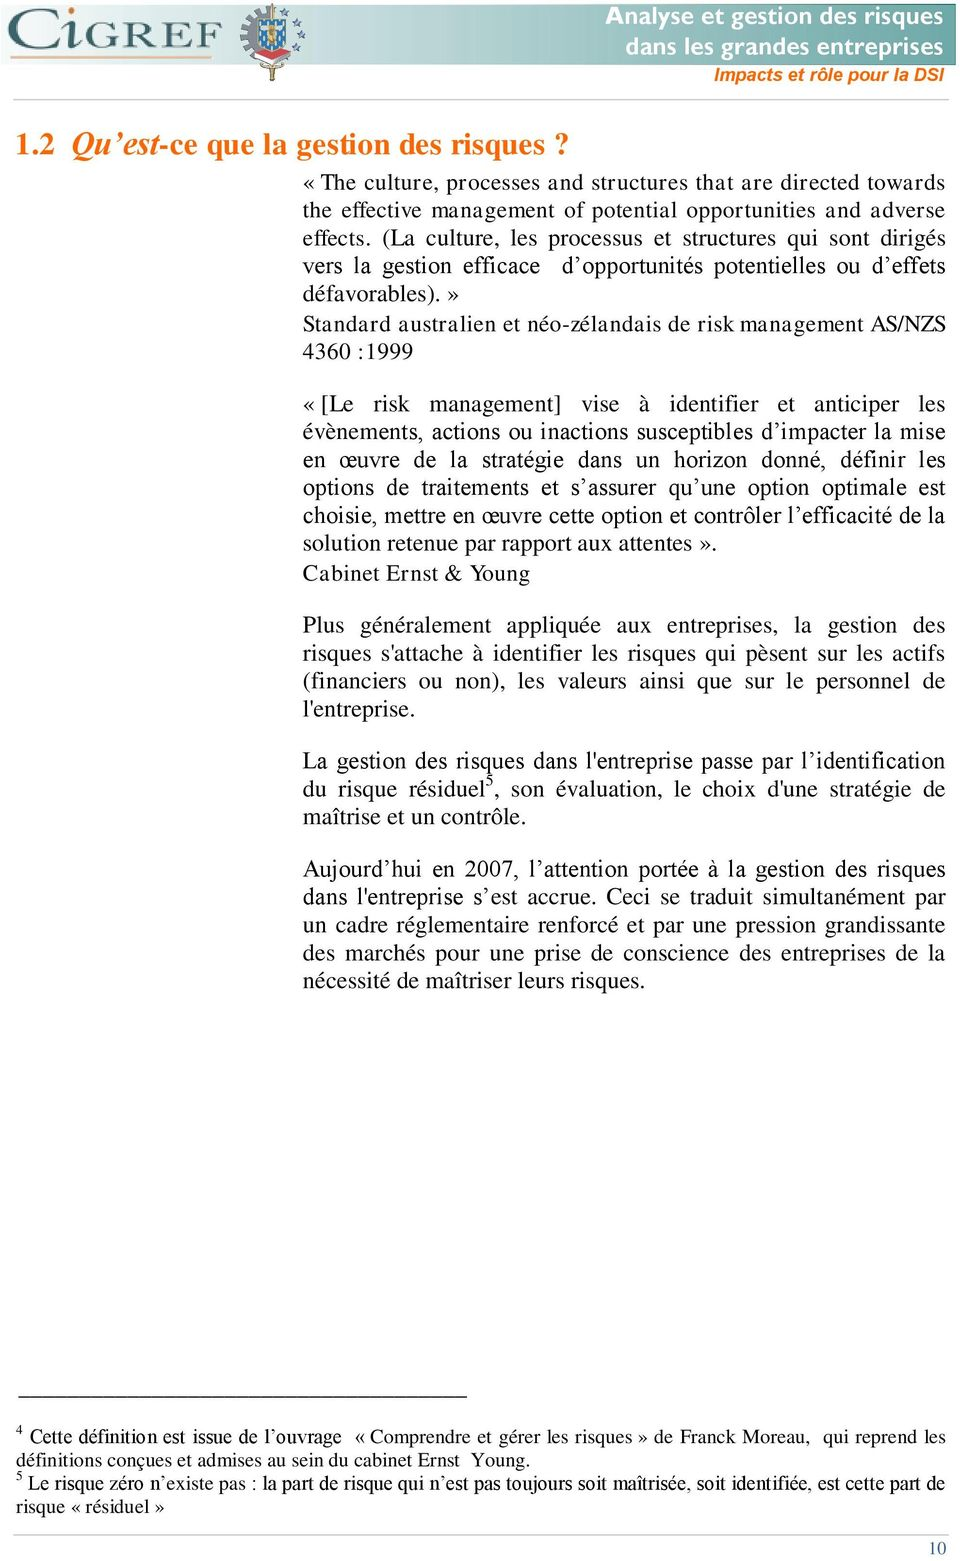 » Standard australien et néo-zélandais de risk management AS/NZS 4360 :1999 «[Le risk management] vise à identifier et anticiper les évènements, actions ou inactions susceptibles d impacter la mise